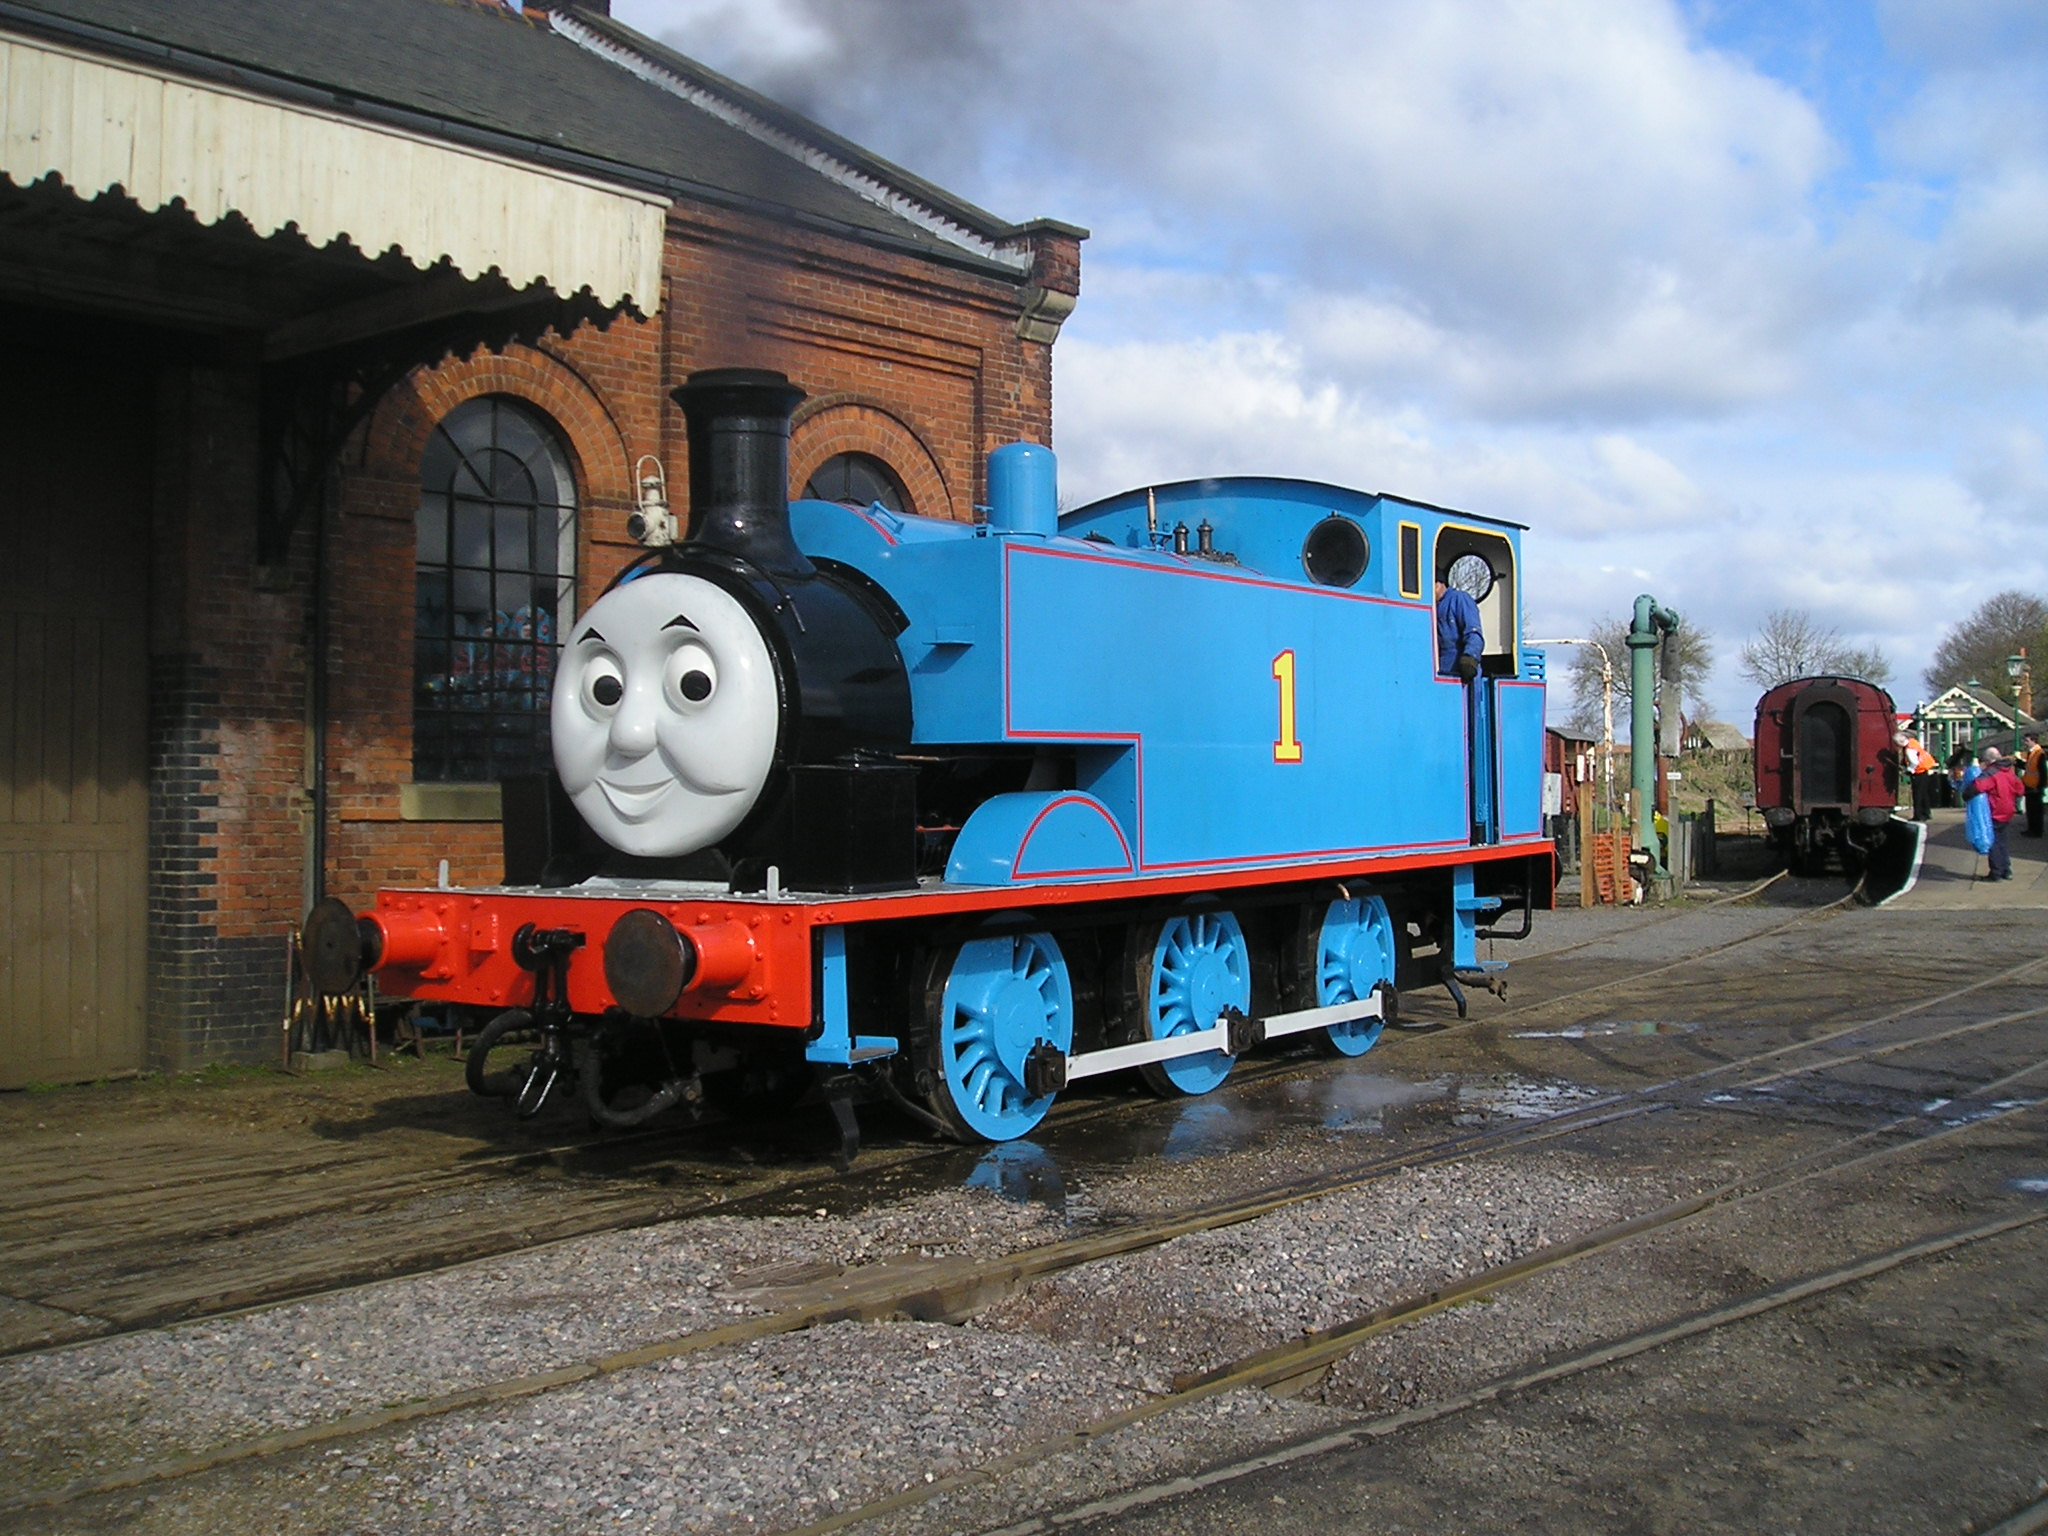 east-anglian-railway-museum-thomas